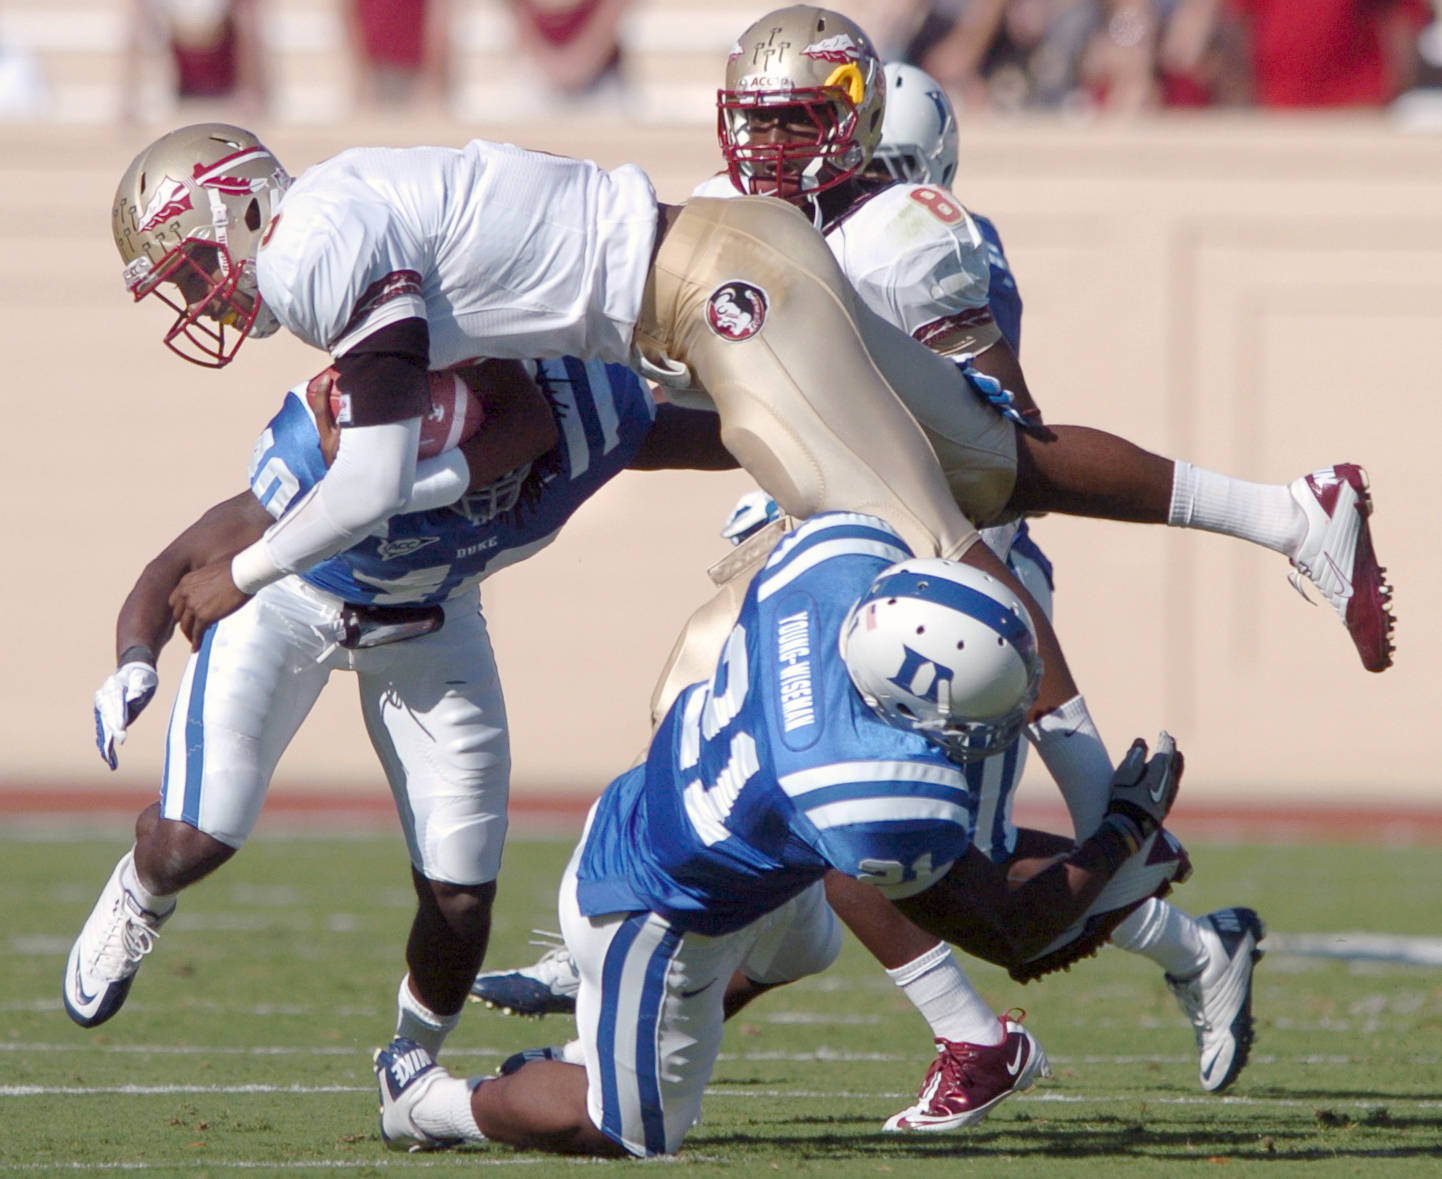 Florida State quarterback E.J. Manuel jumps over Duke's Anthony Young-Wiseman (21) for a first down. (AP Photo/The Herald-Sun, Bernard Thomas)